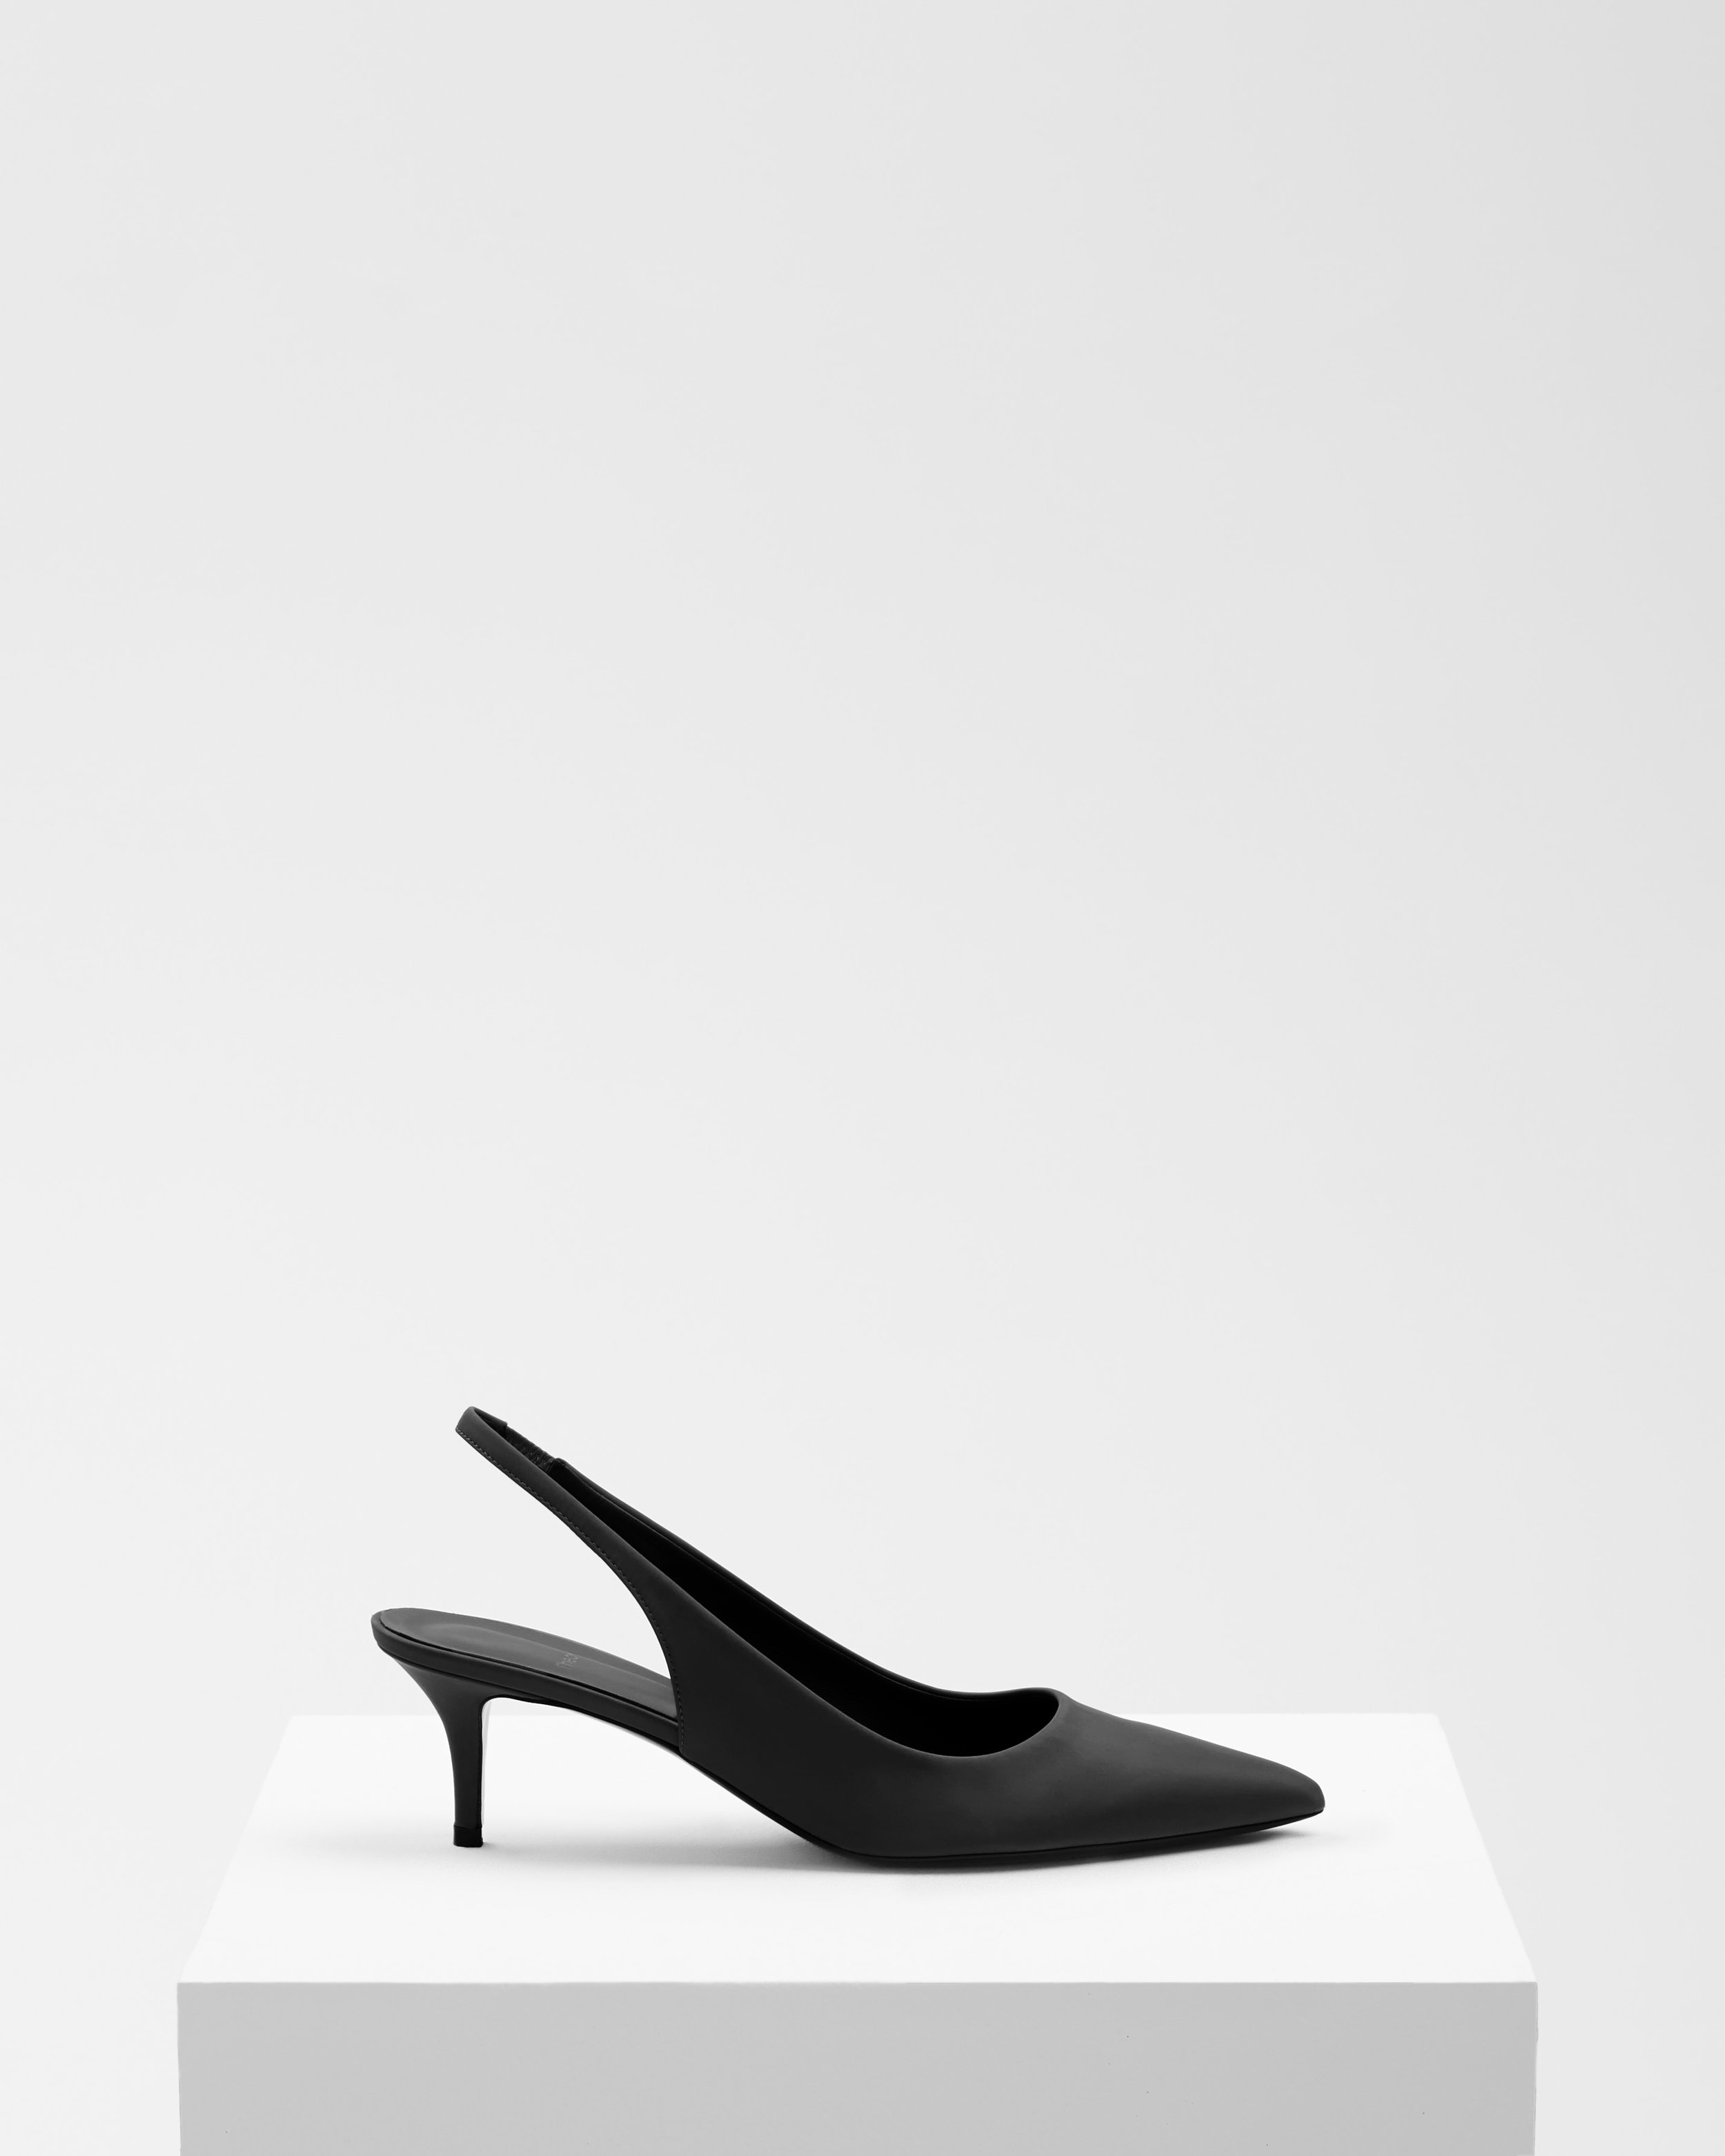 AFTER-Carmen Slingback_Hero Shot_BLACK.jpg